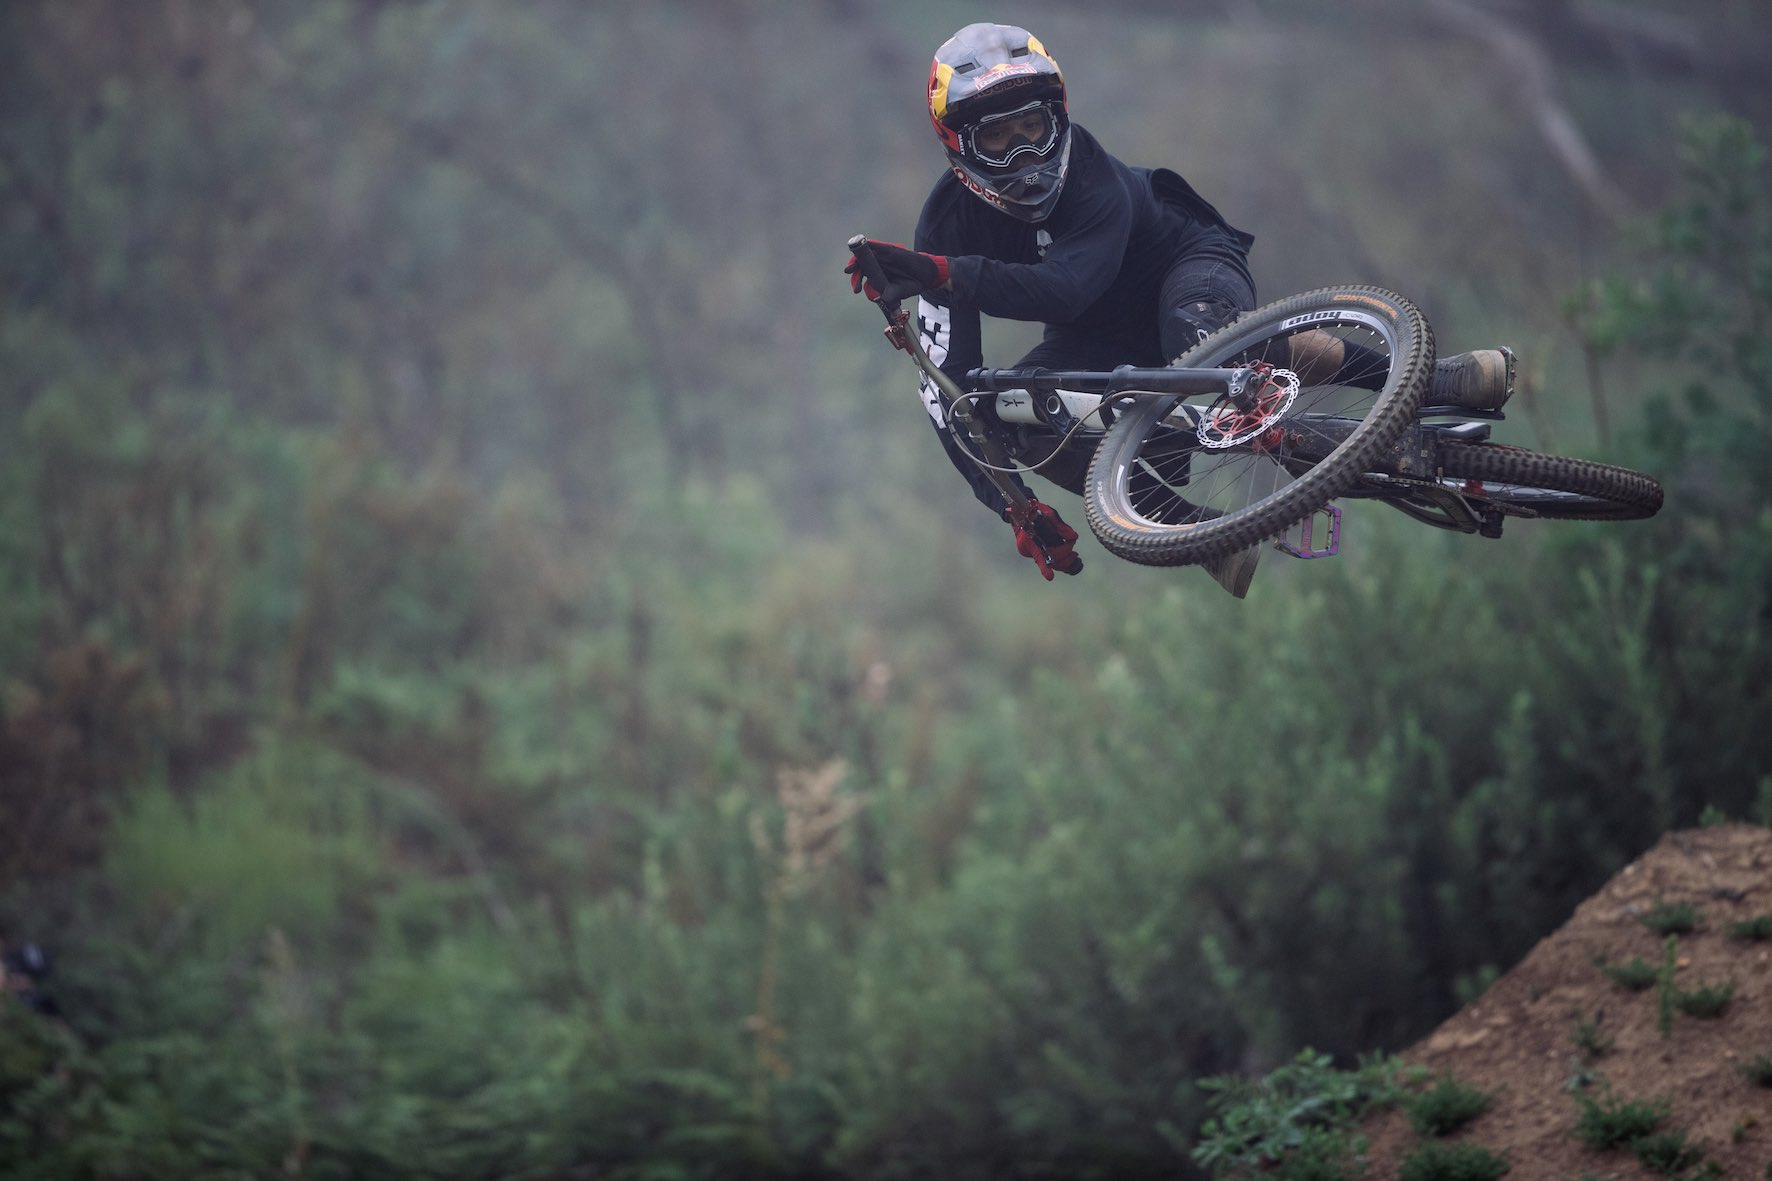 Interview with Freeride Mountain Bike Master Andreu Lacondeguy